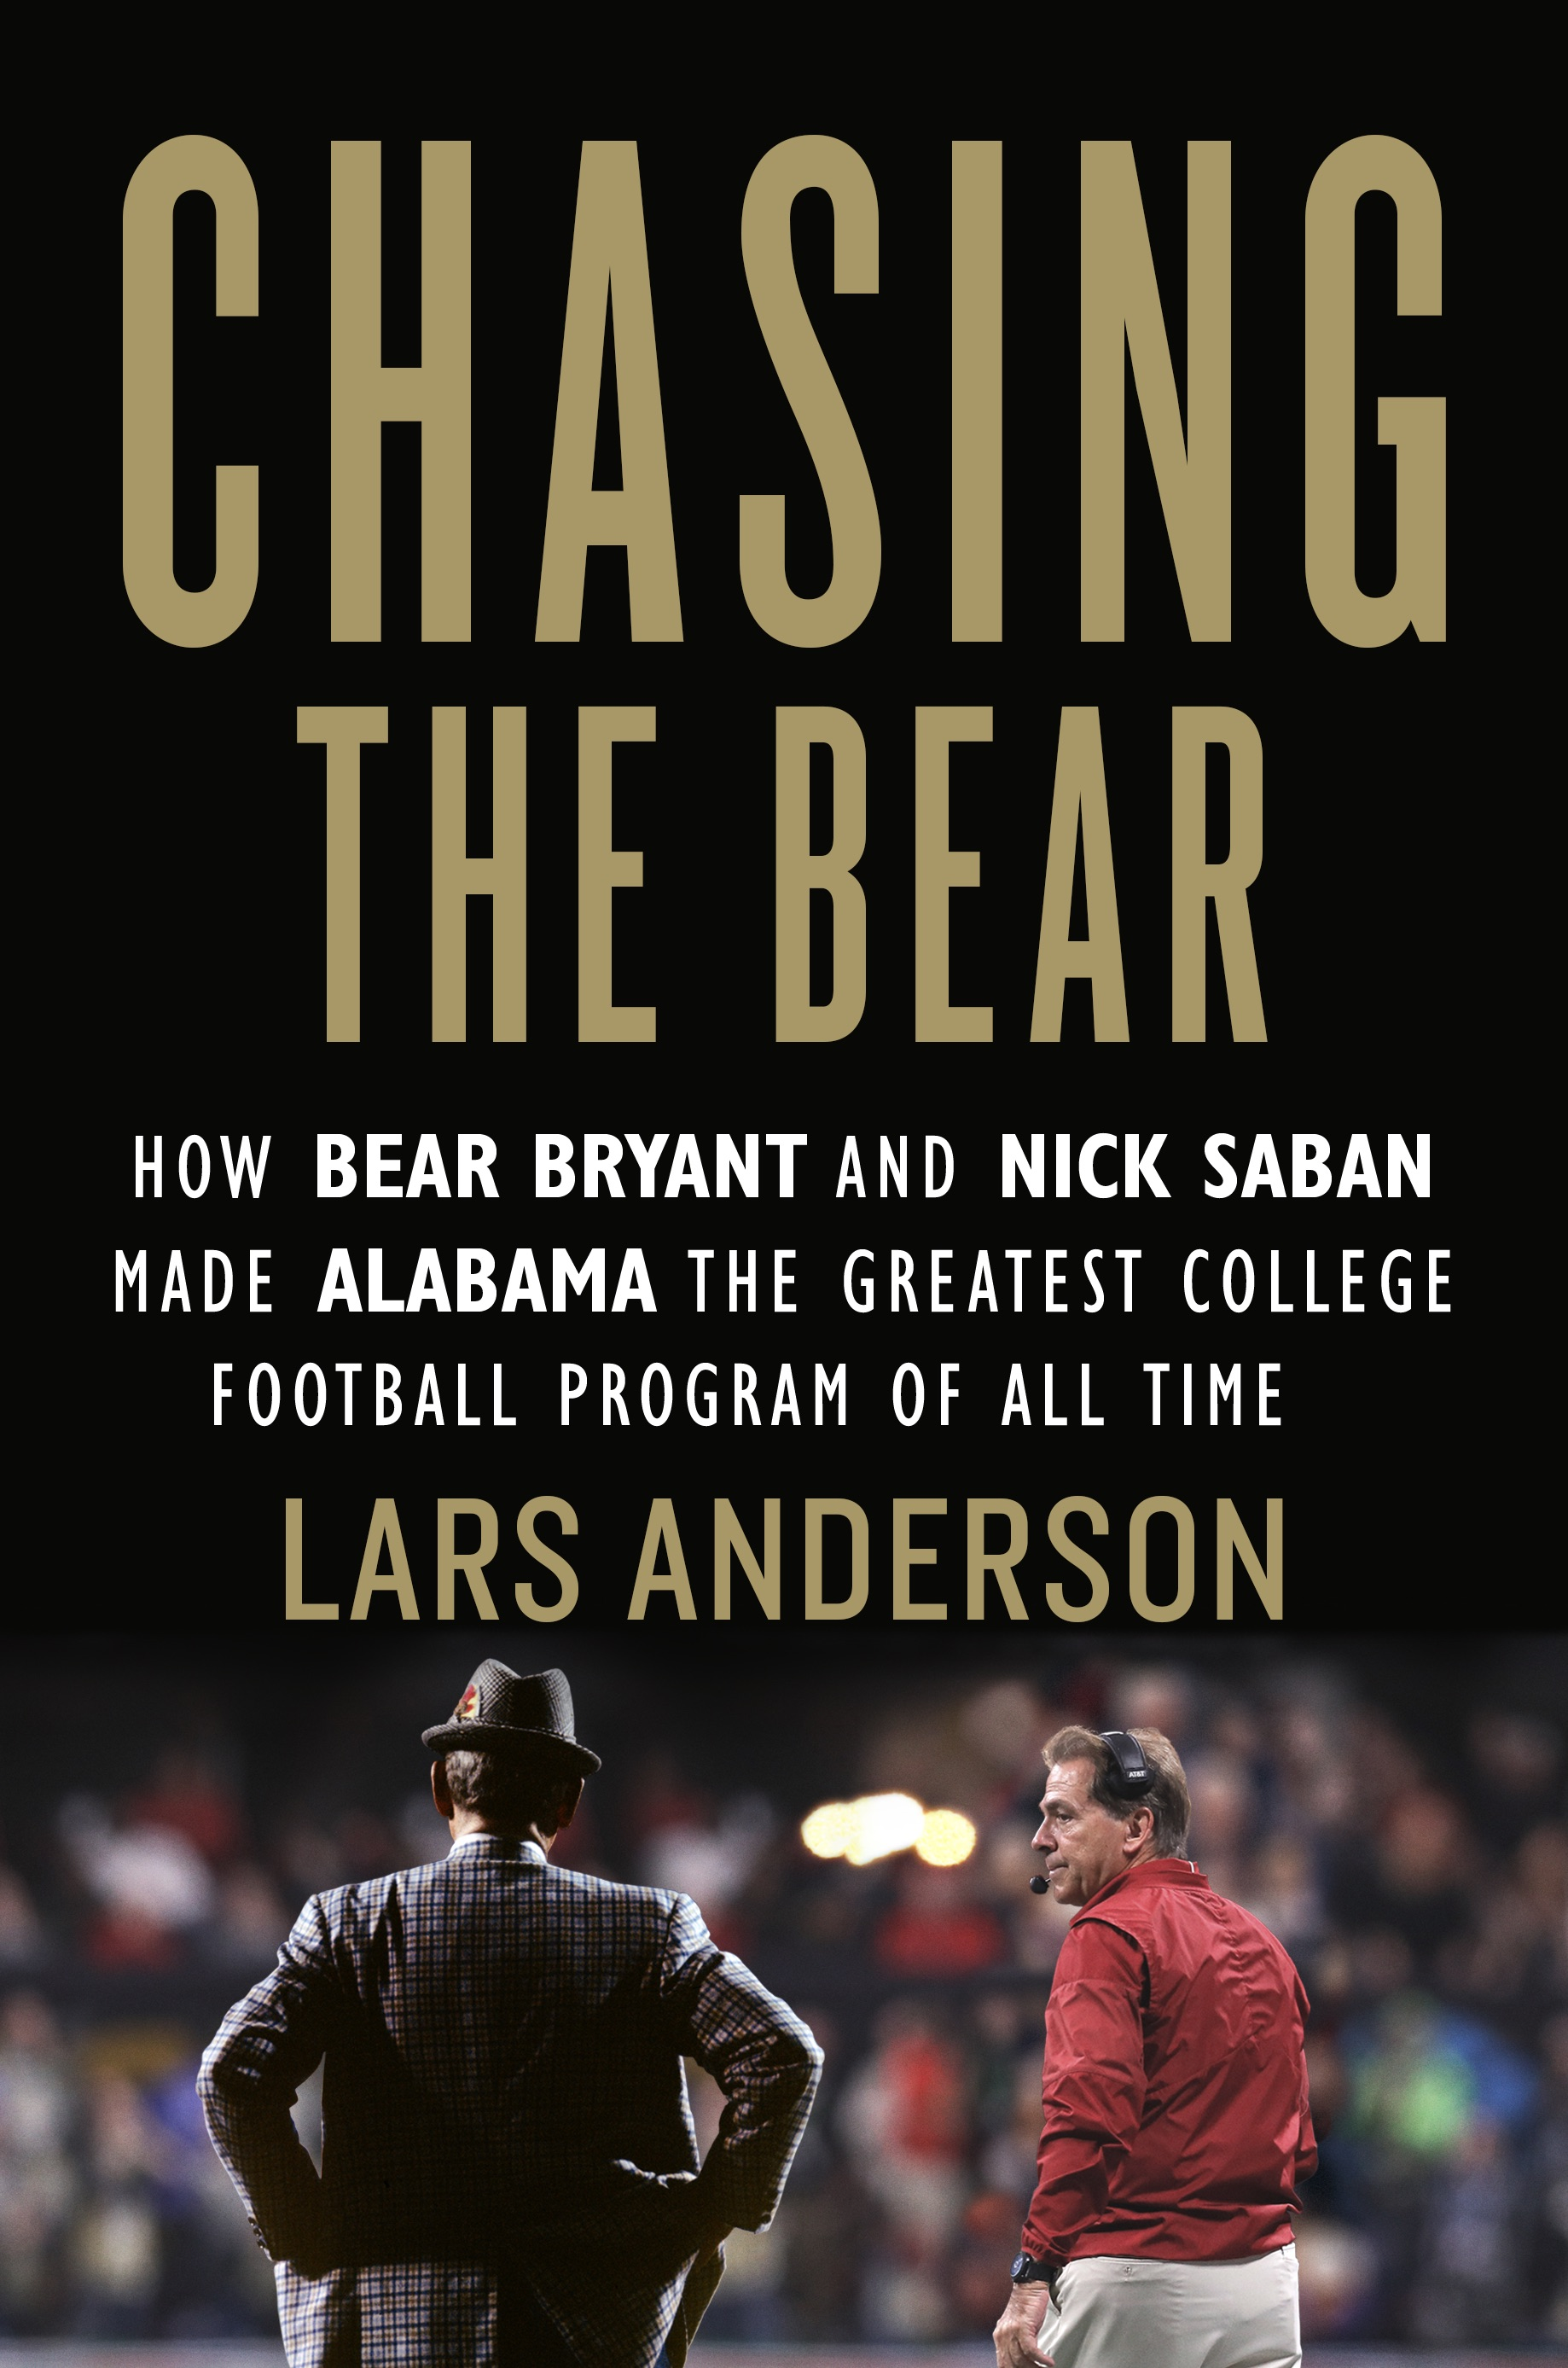 Chasing the Bear by Lars Anderson hit shelves on September 3rd.